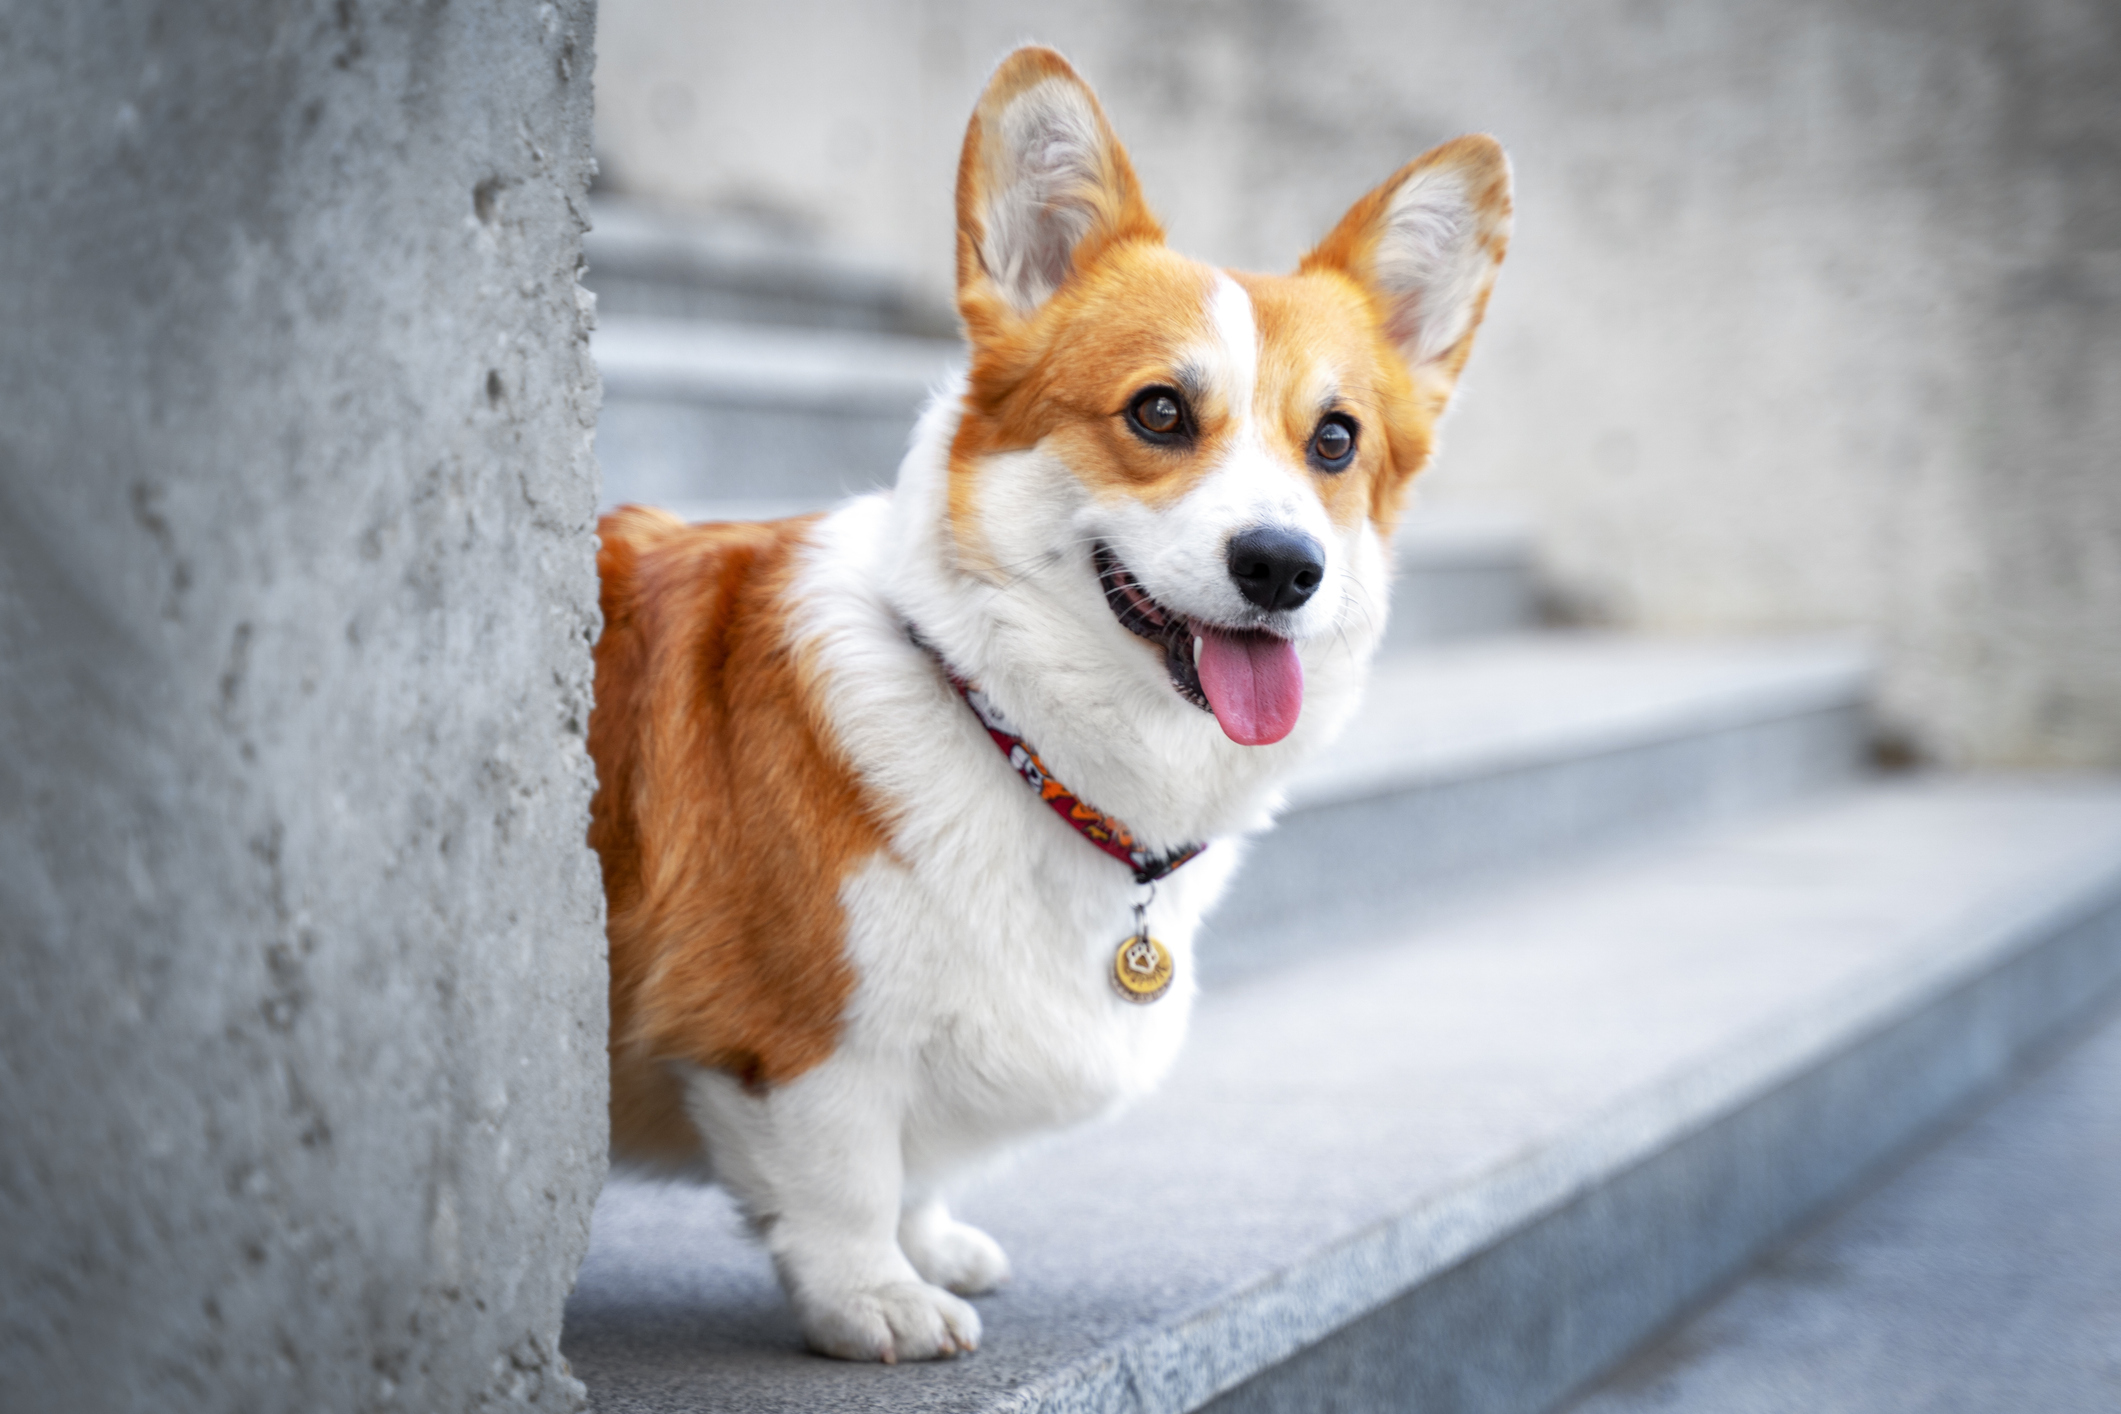 Cute Welsh Corgi dog sitting on the steps in the town. a dog in the city. Dog in urban landscape